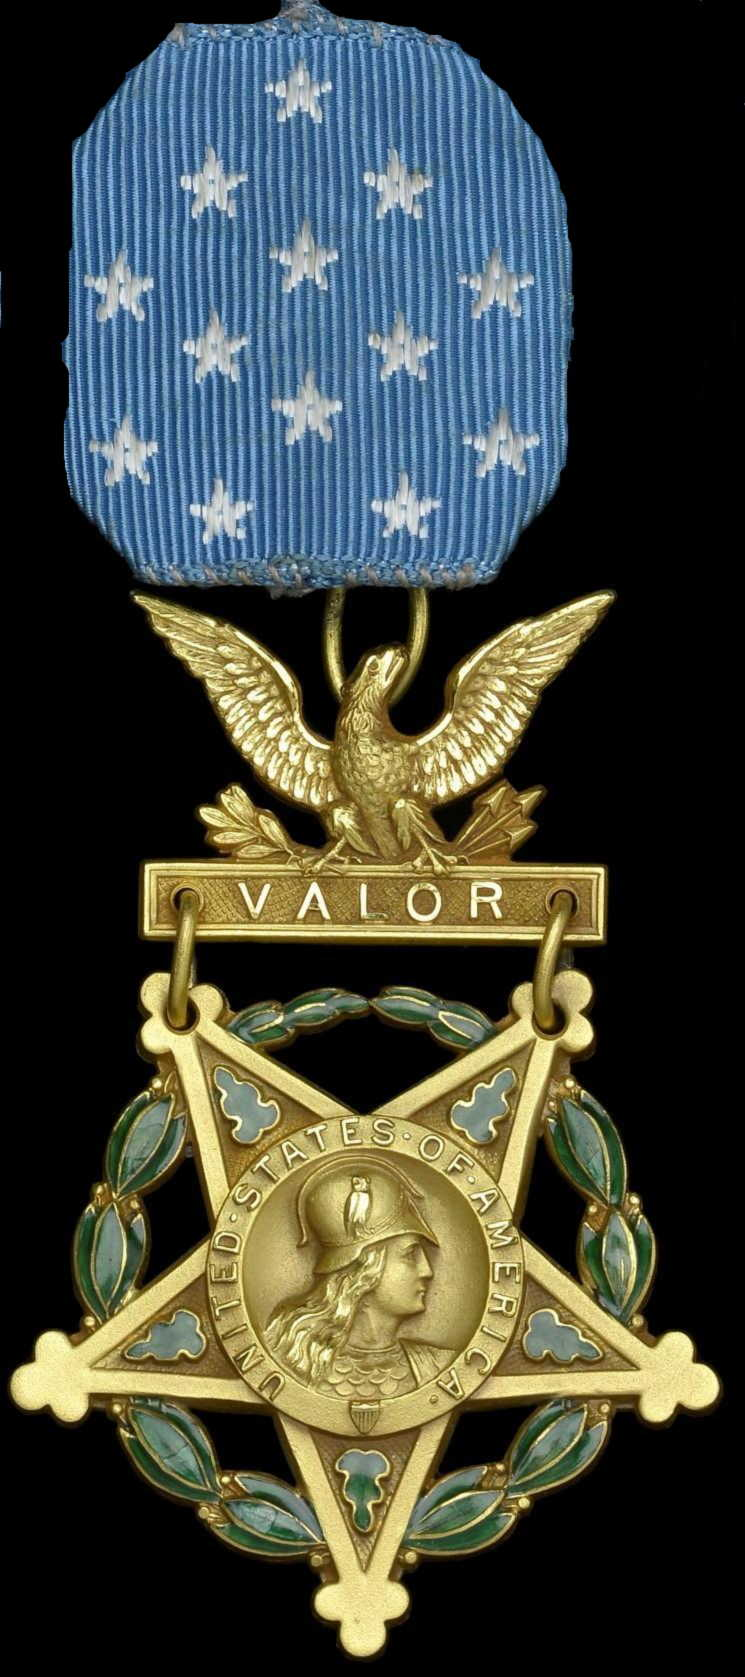 The US Medal of Honor – the highest US award for gallantry in action. This is the pre-1945 breast badge; since 1945, it has been worn as a neck badge